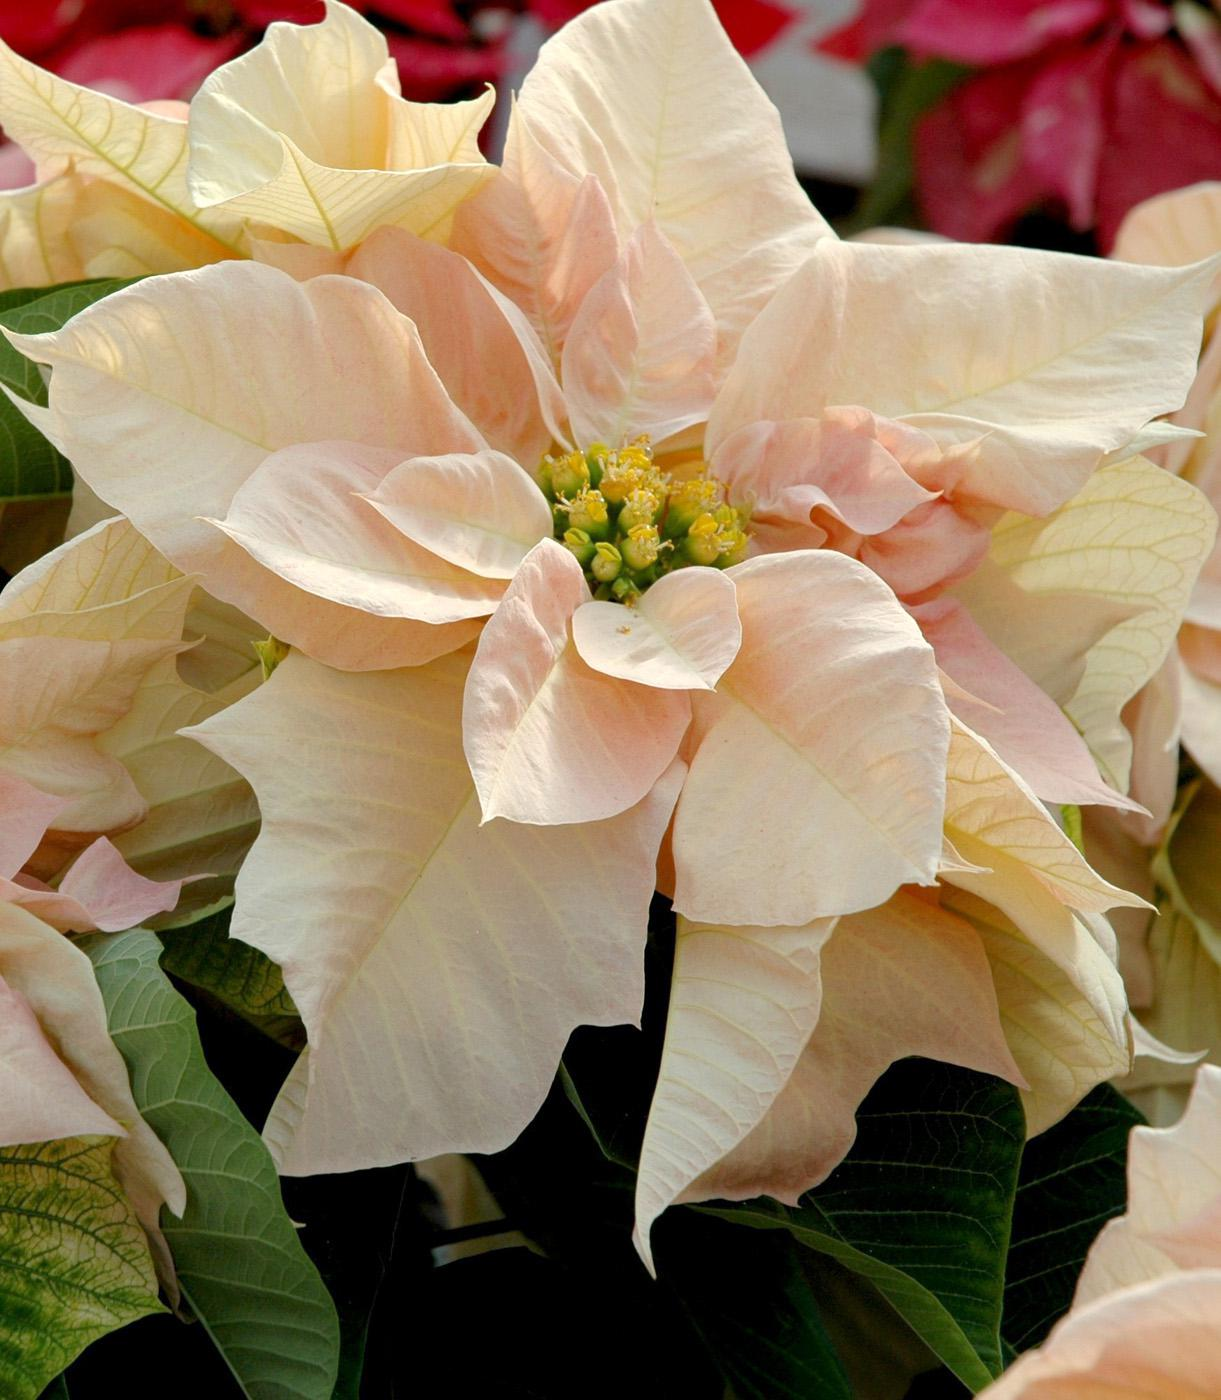 Visions of Grandeur is mesmerizing with its shades of rose pink, cream and yellow. It is elegant, fit for royalty and will make you want to do whatever it takes to get one. (Photo by Norman Winter)